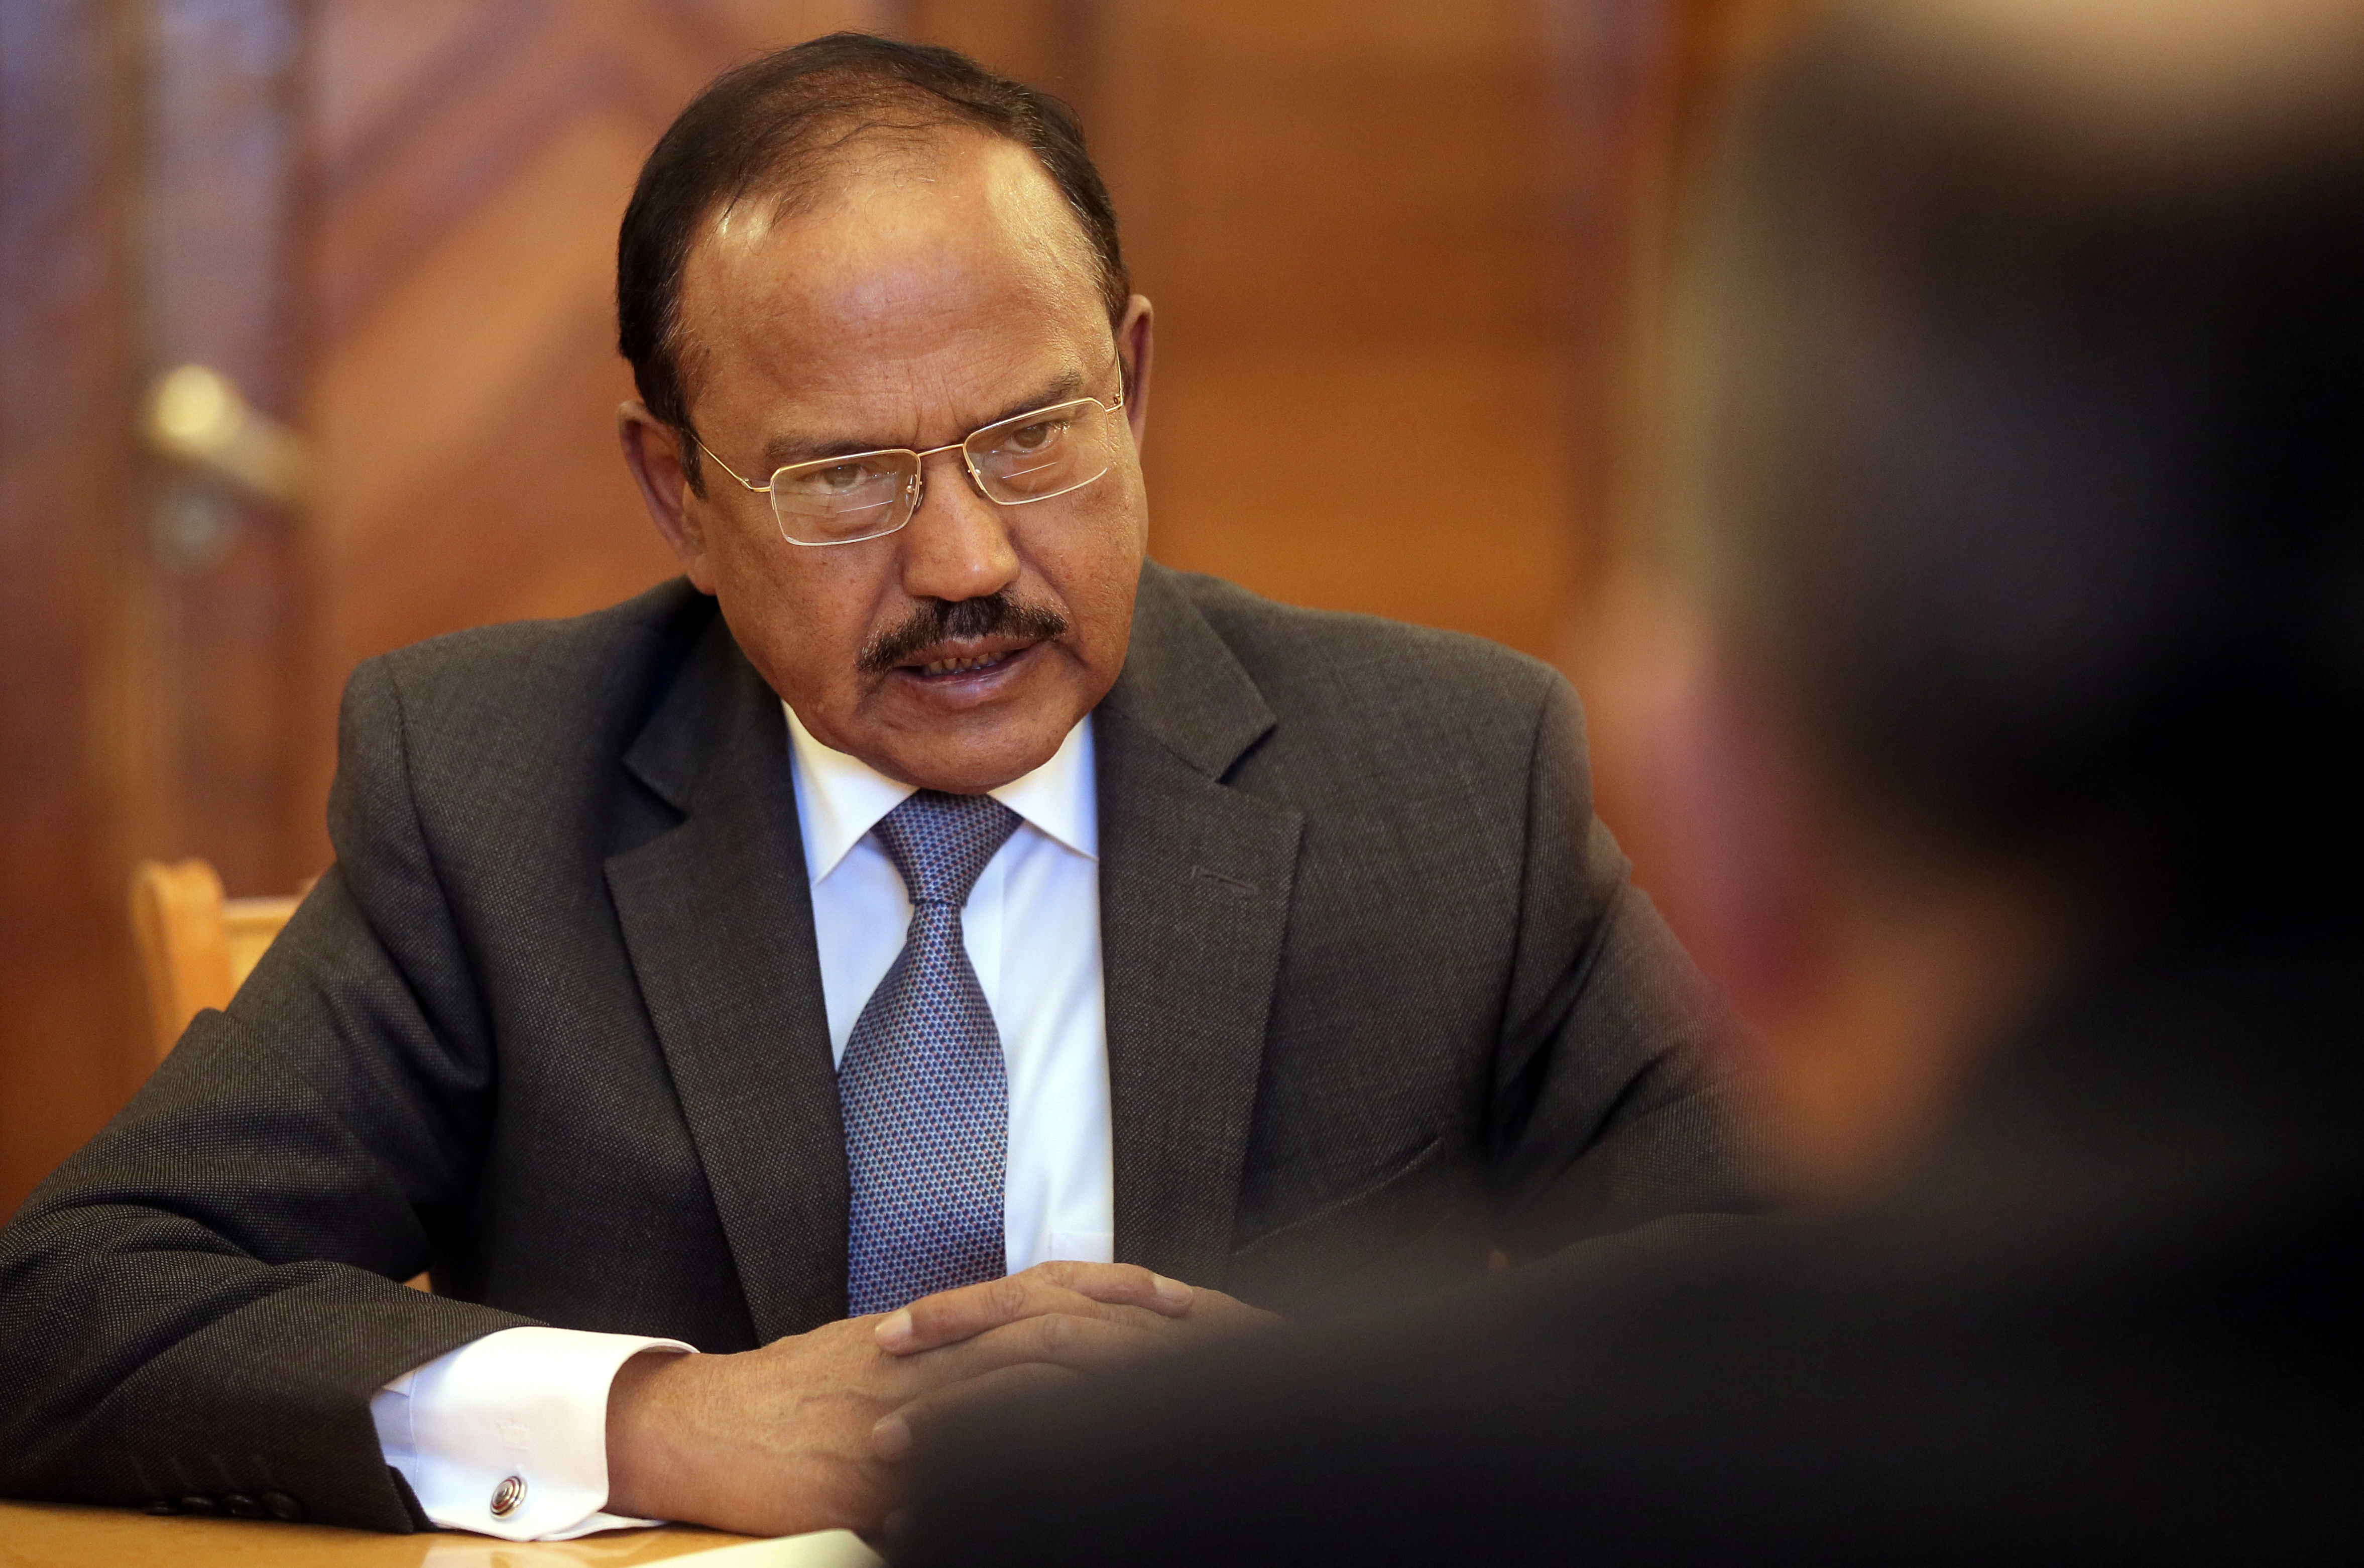 India's National Security Advisor Ajit Doval speaks during a meeting with Russian Foreign Minister Sergei Lavrov in Moscow, Russia May 10, 2018. Maxim Shipenkov/Pool via REUTERS